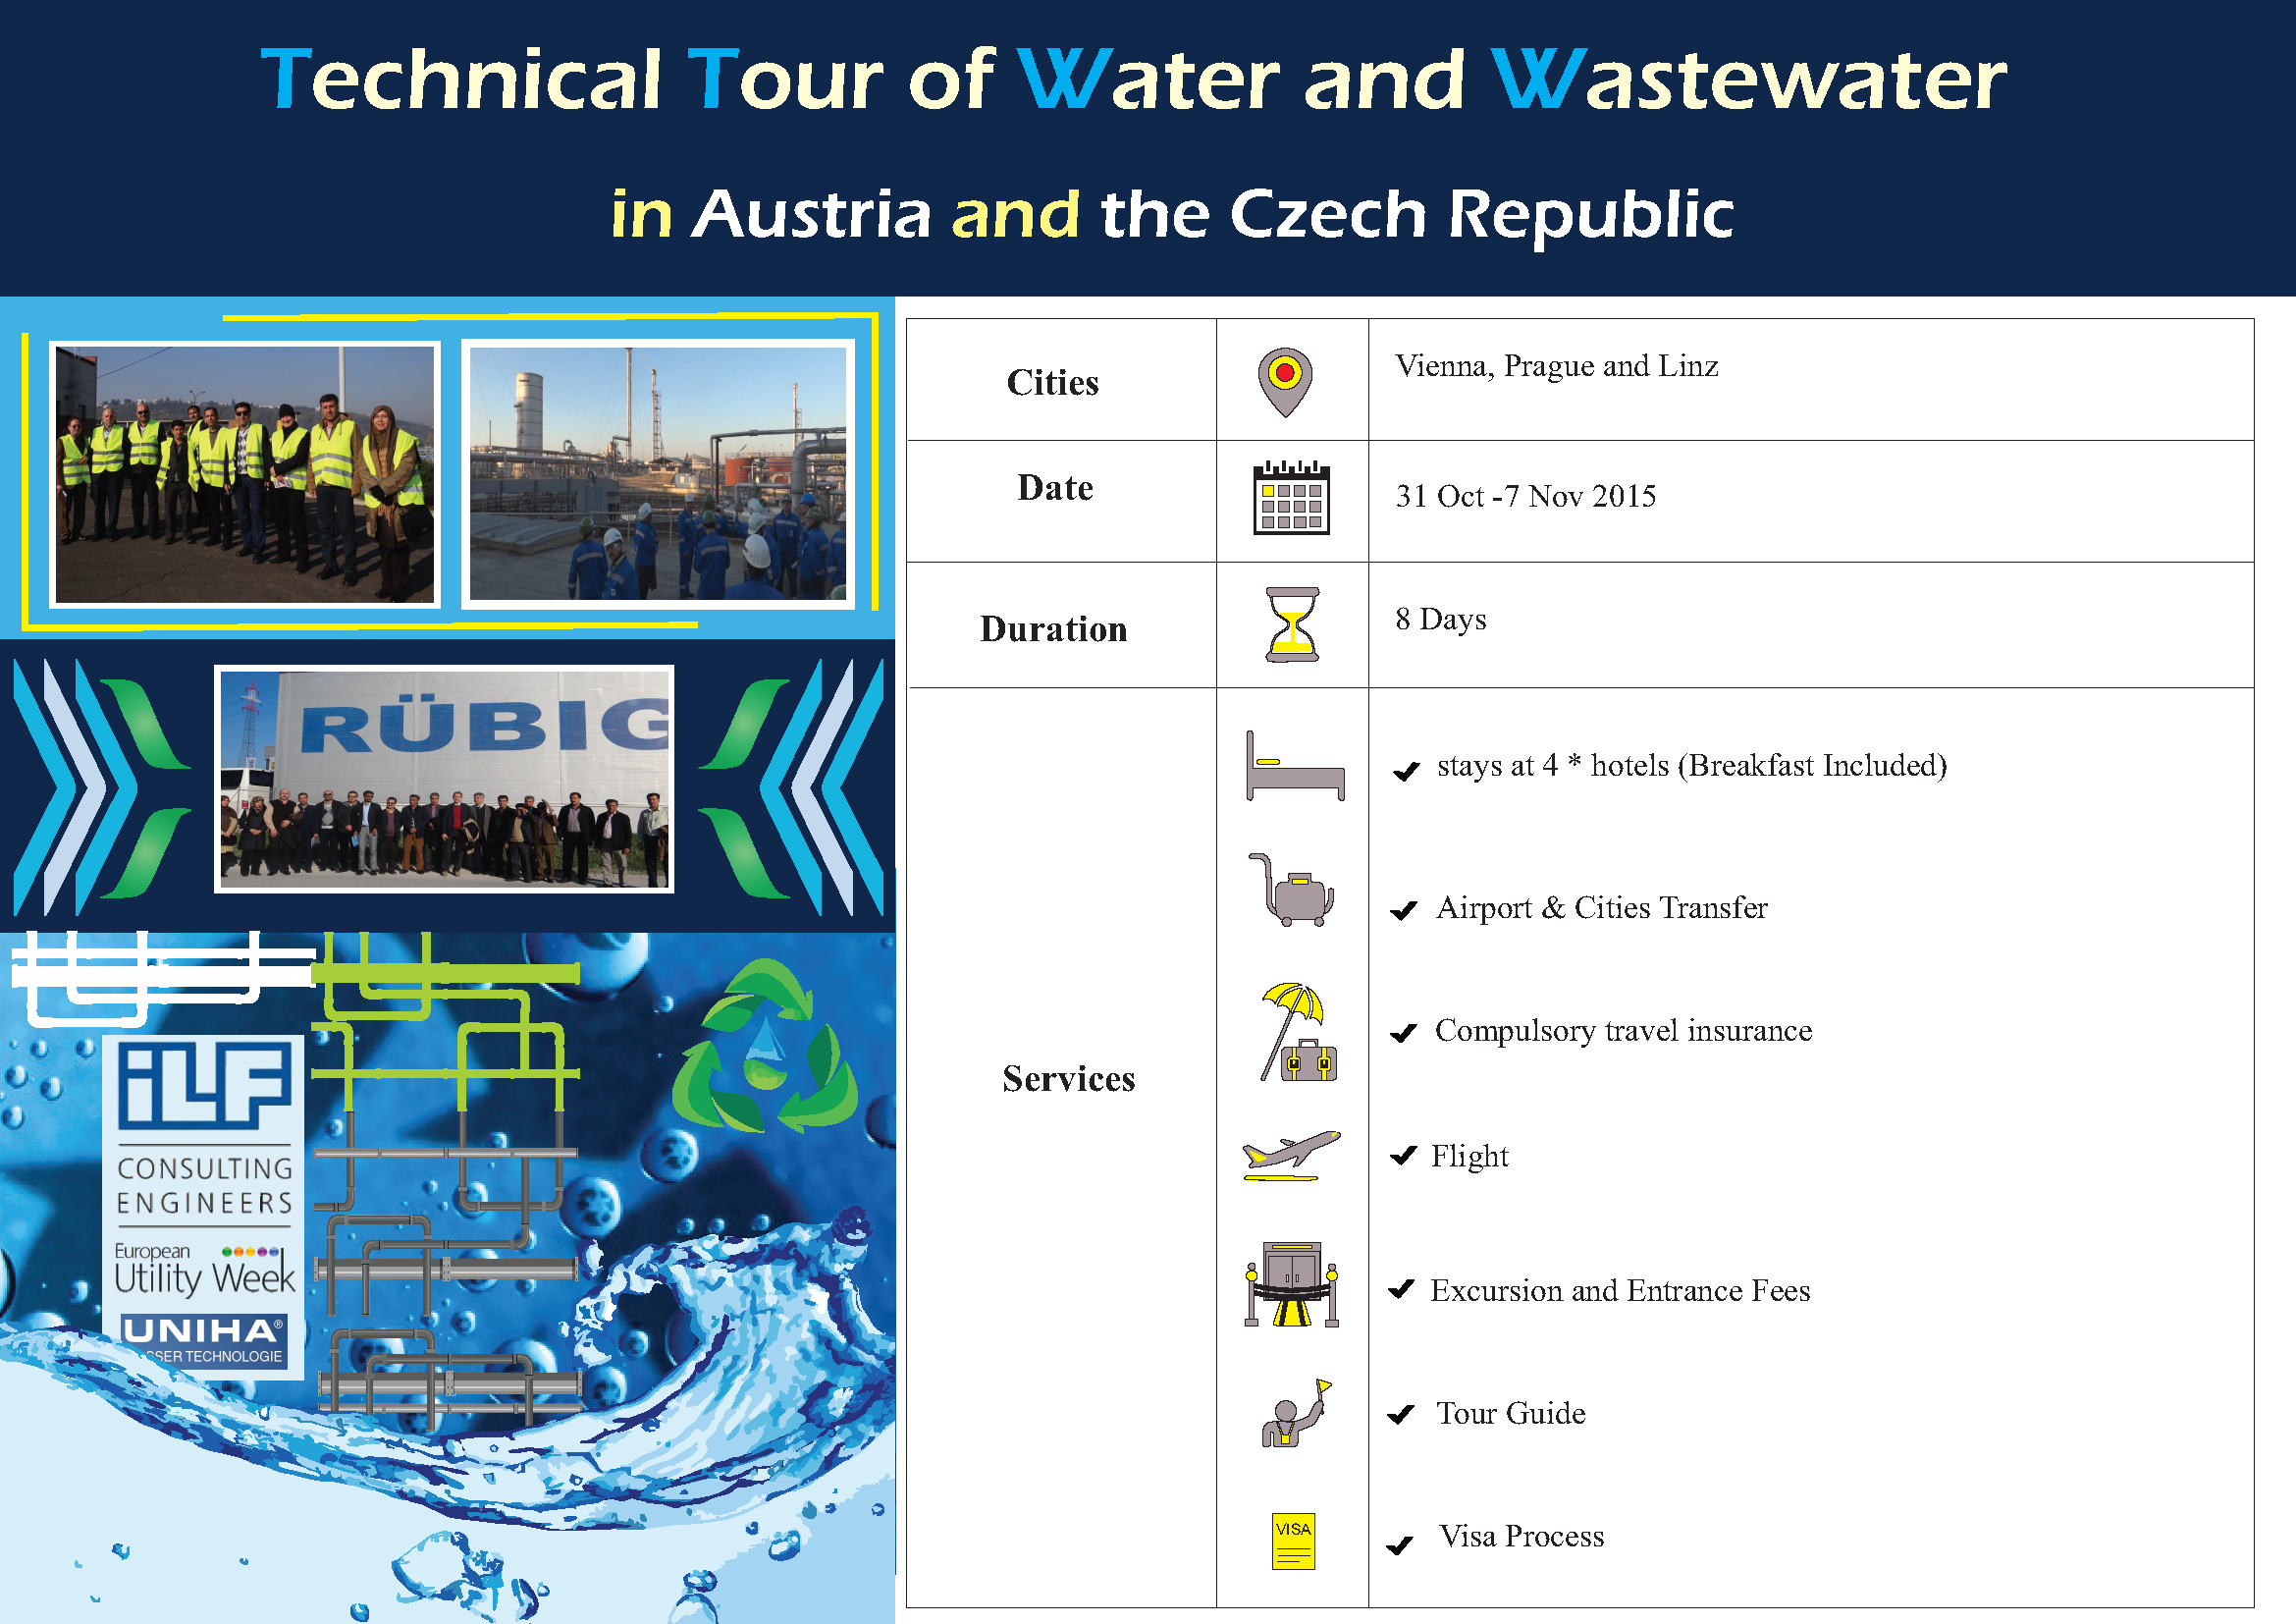 Technical Tour of Water and Wastewater, Oct. 2015